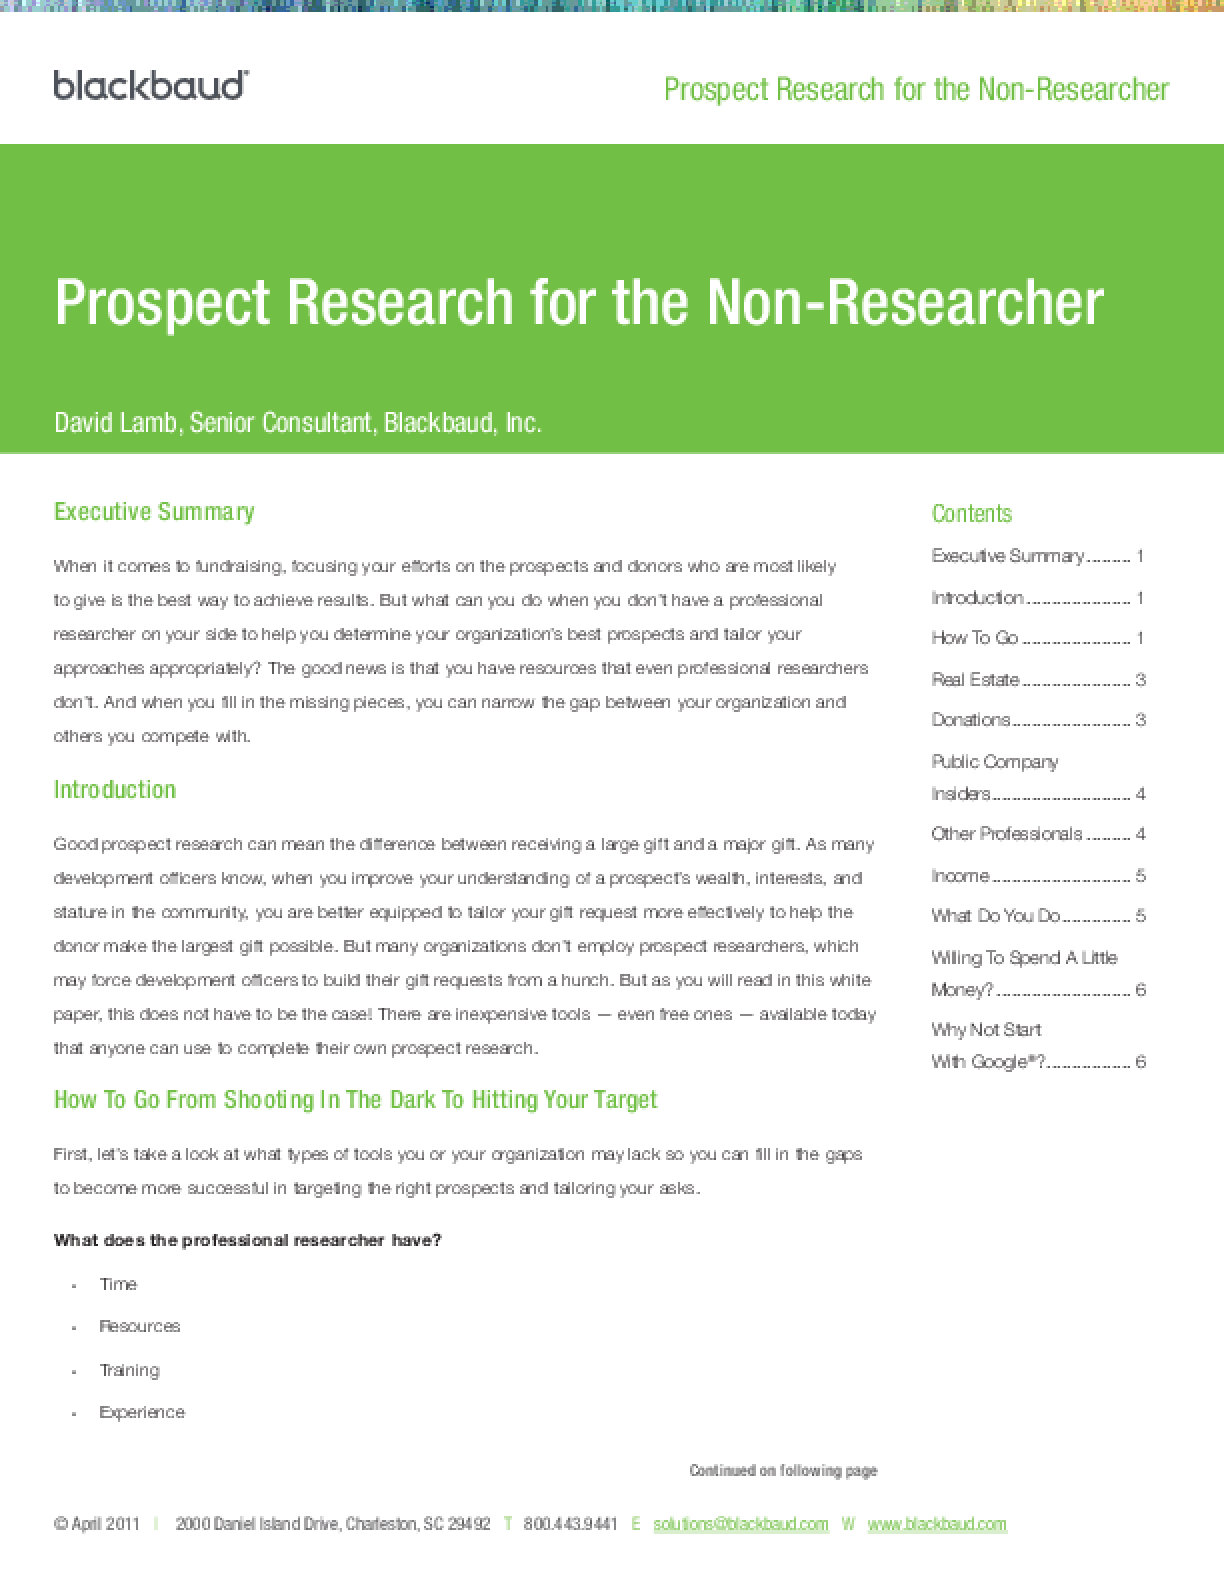 Prospect Research for the Non-researcher